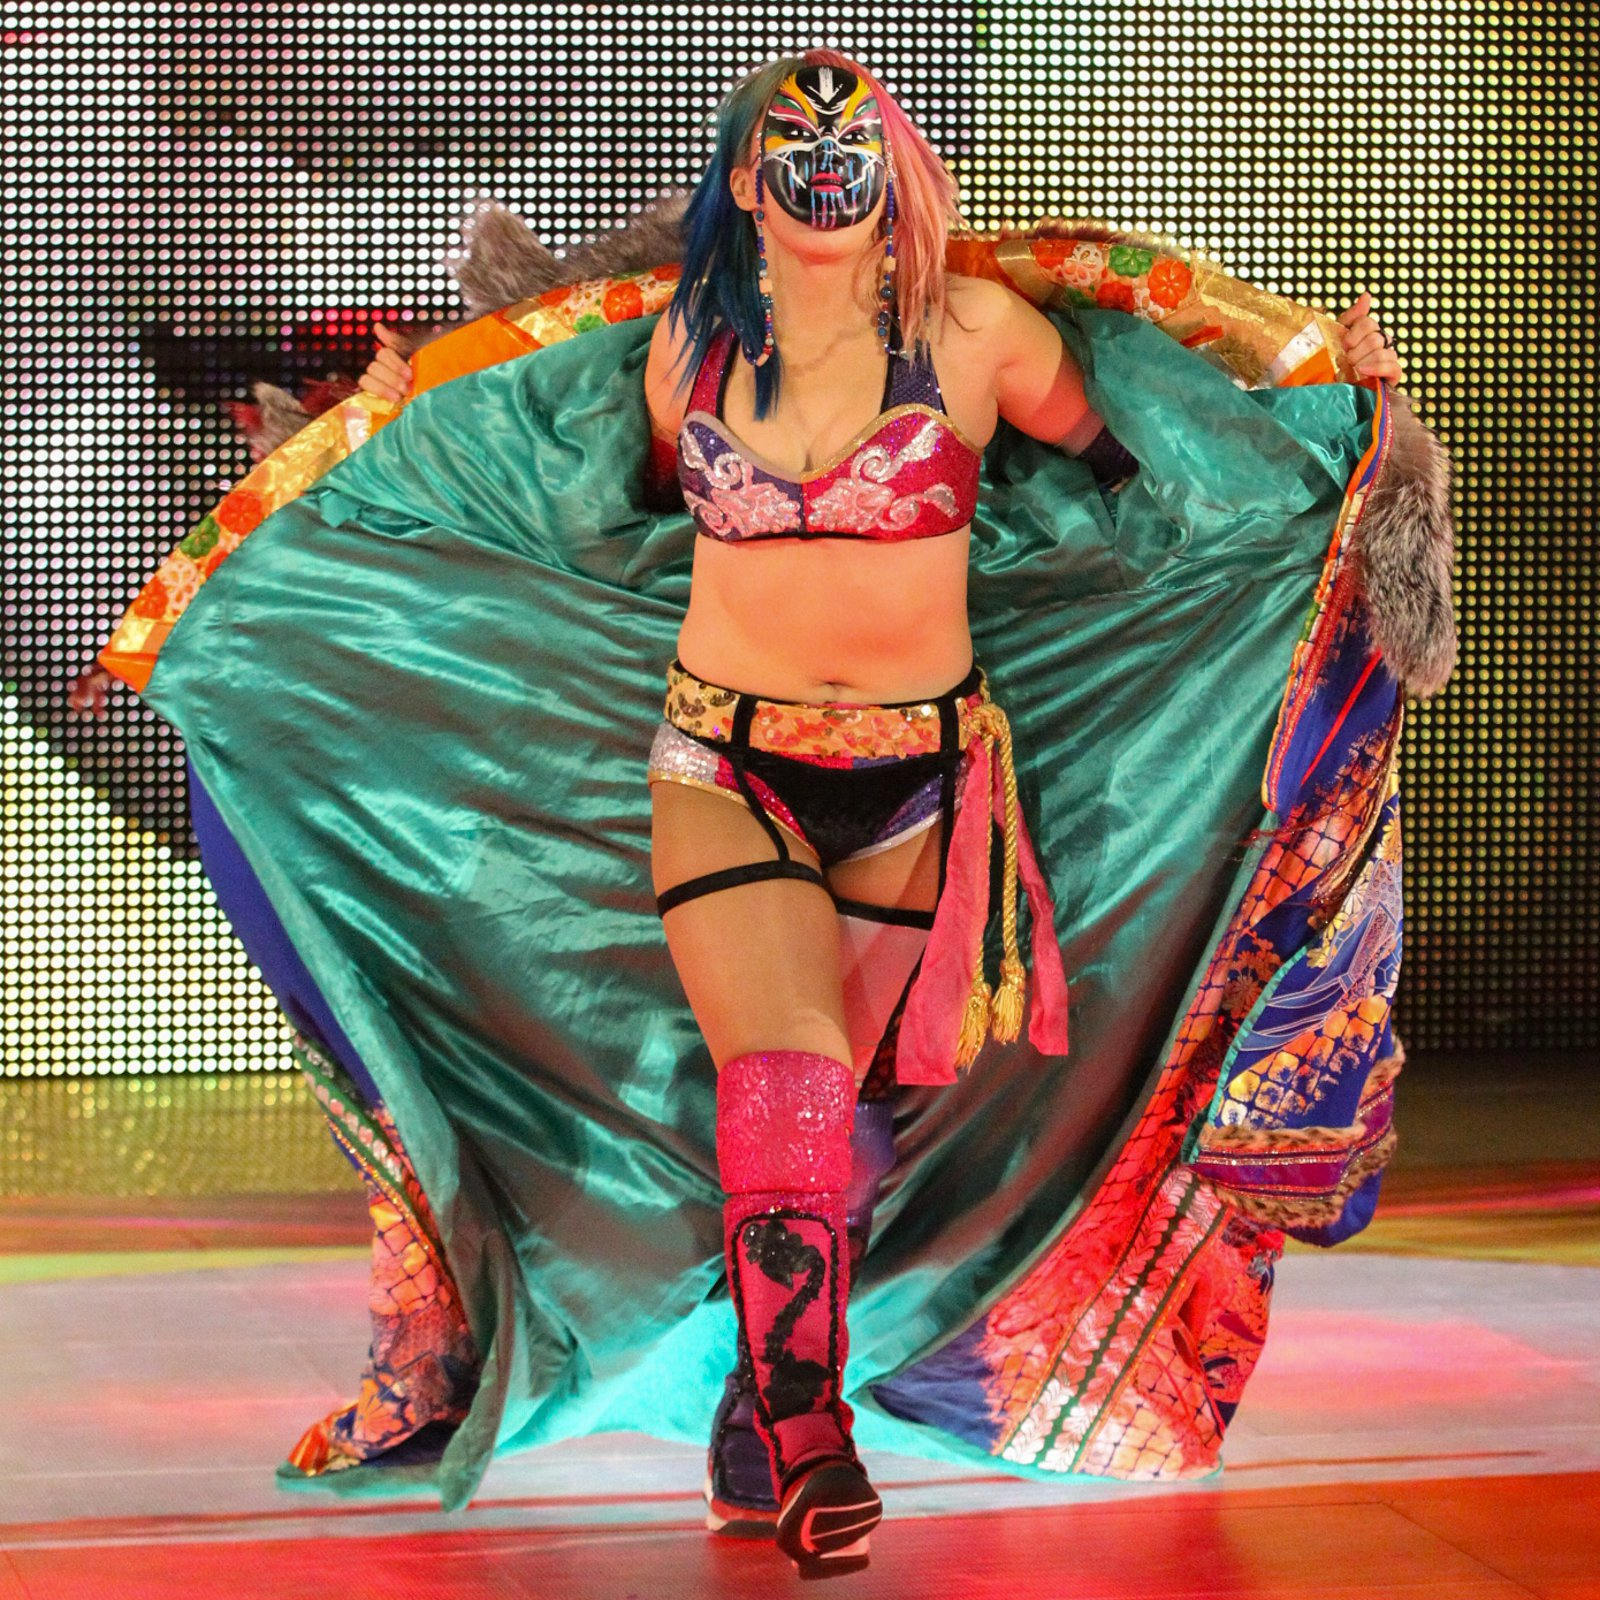 One week after winning a Battle Royal to earn a championship opportunity, Asuka hits the ring for the contract signing.